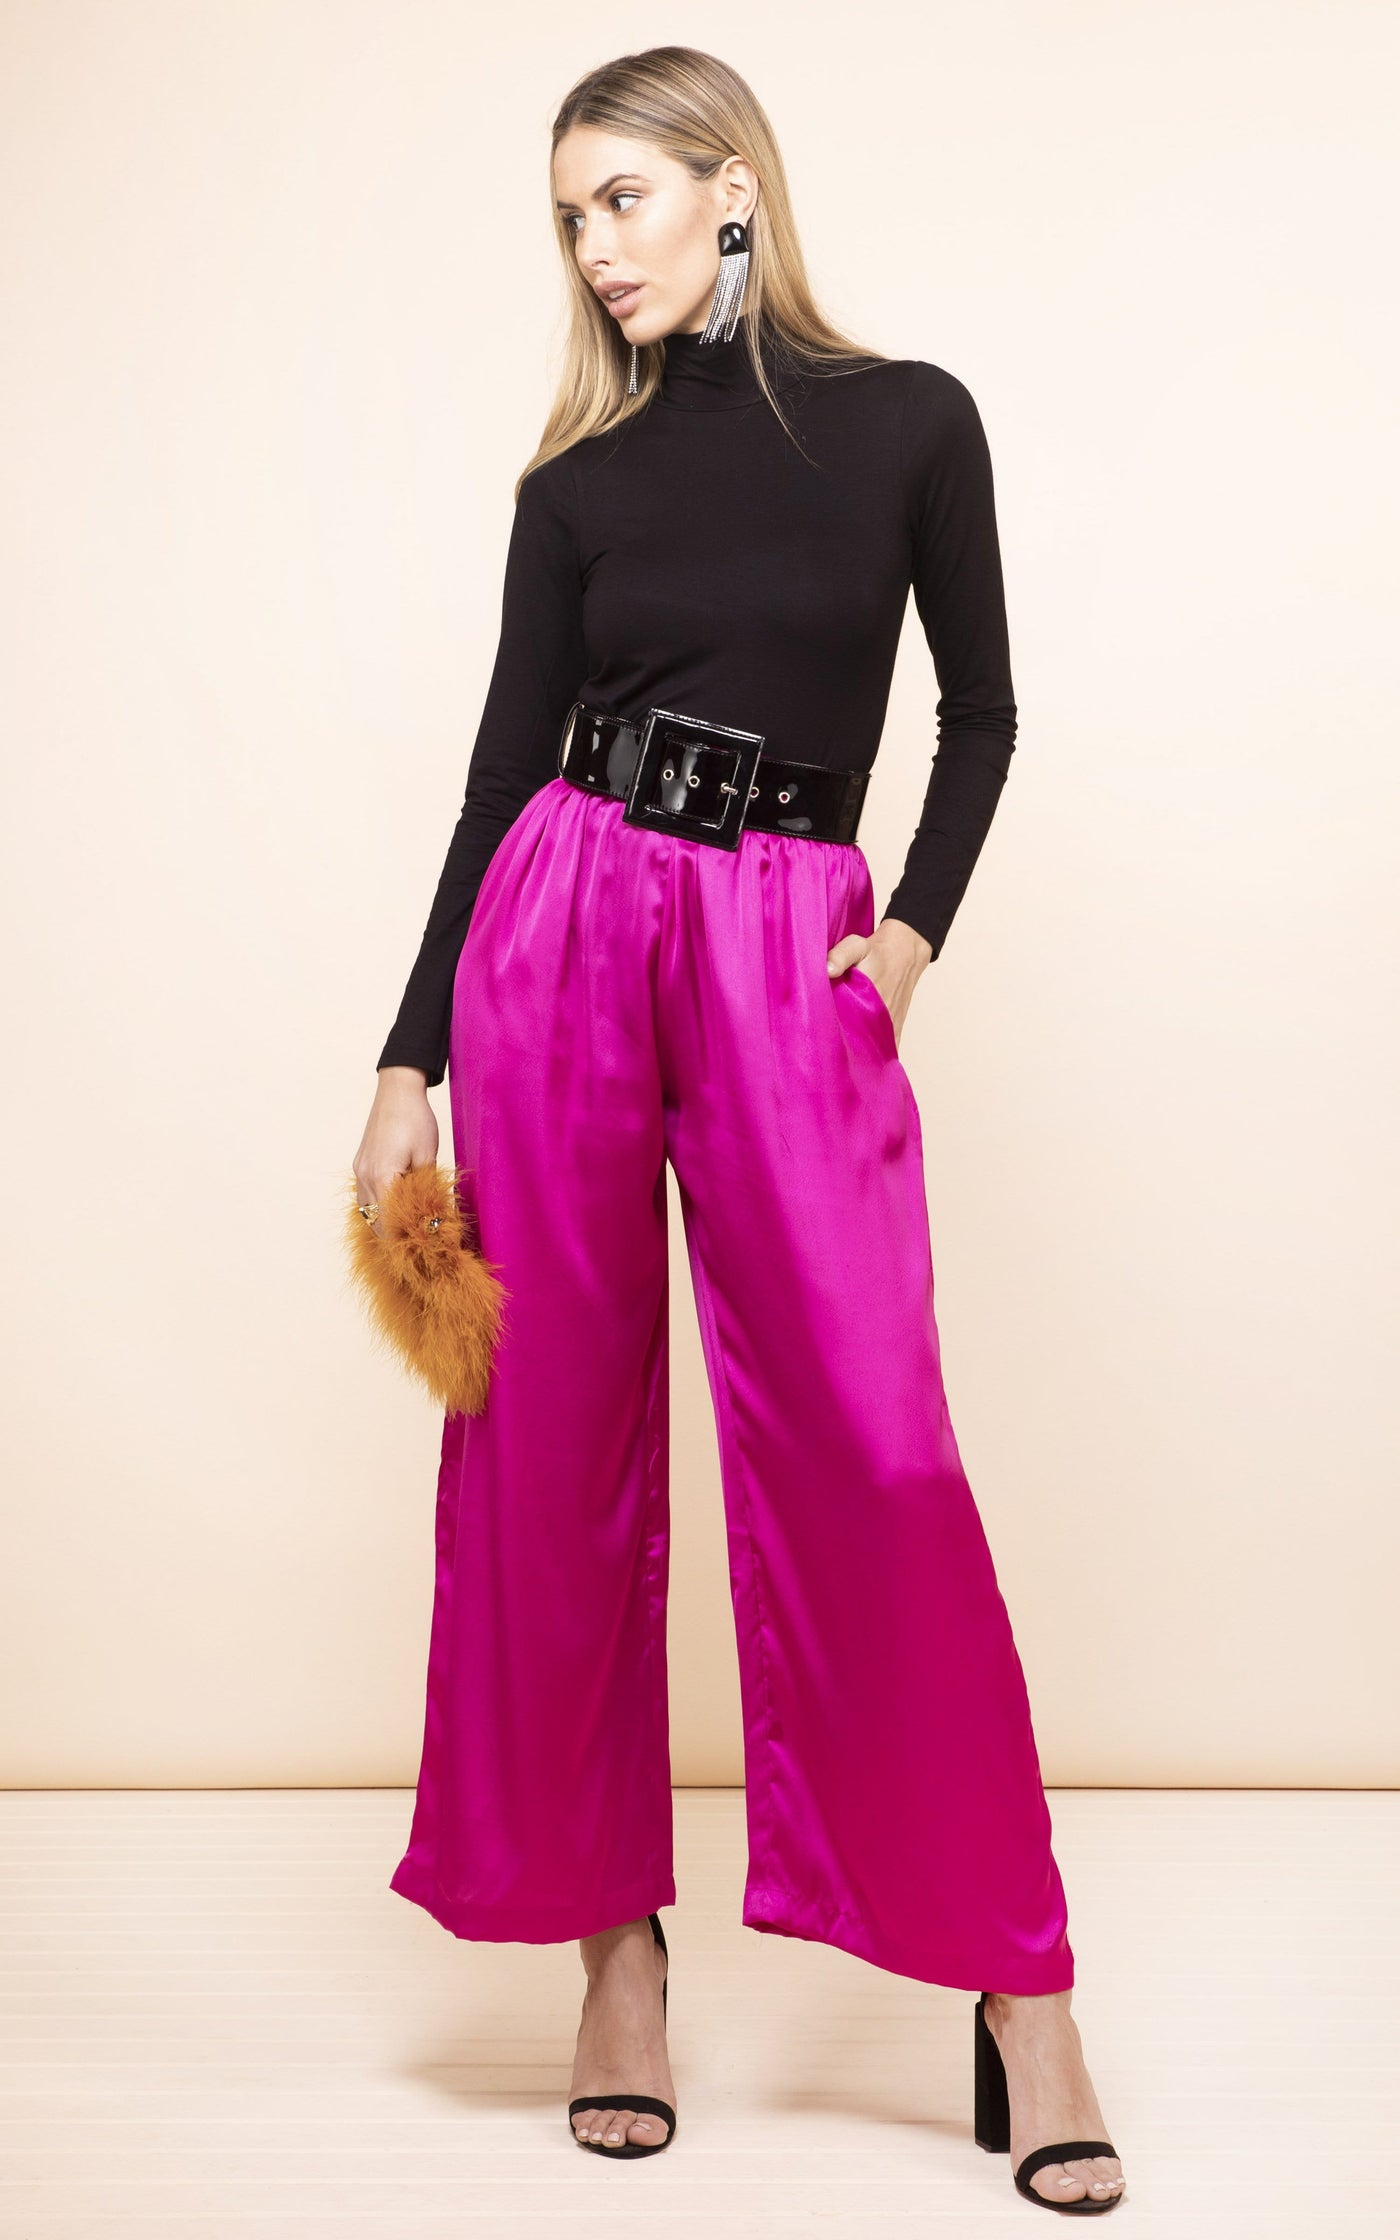 Front-facing model looking left wearing Chinchilla Trousers in magenta pink by Dancing Leopard